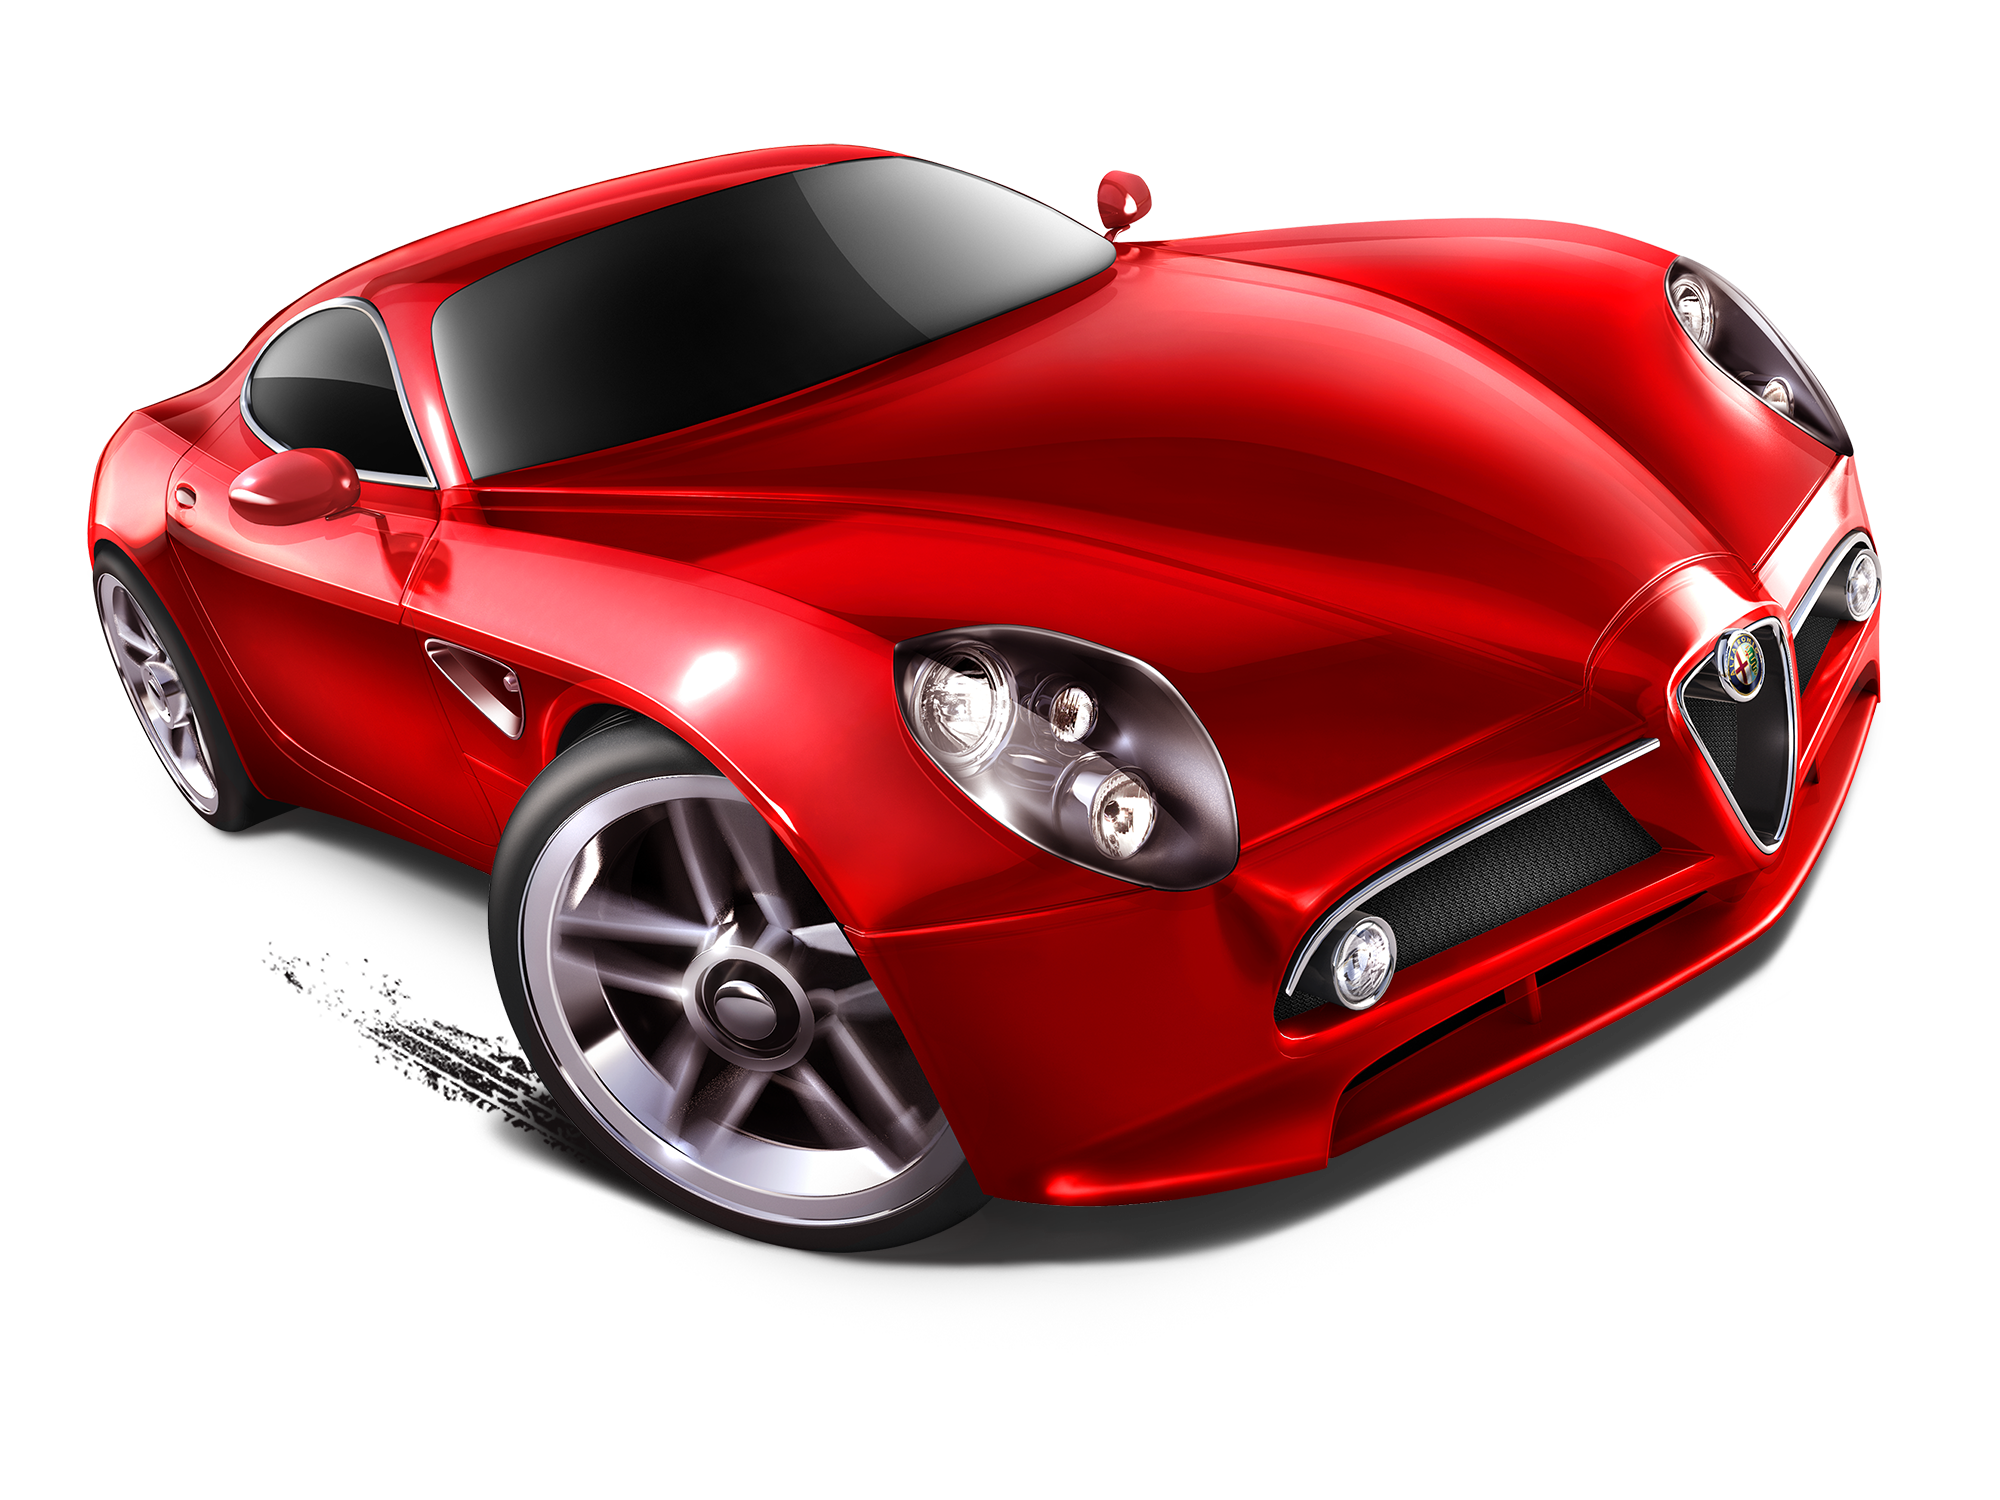 Hot Wheels clipart red Wheels 24 toy diecast Car